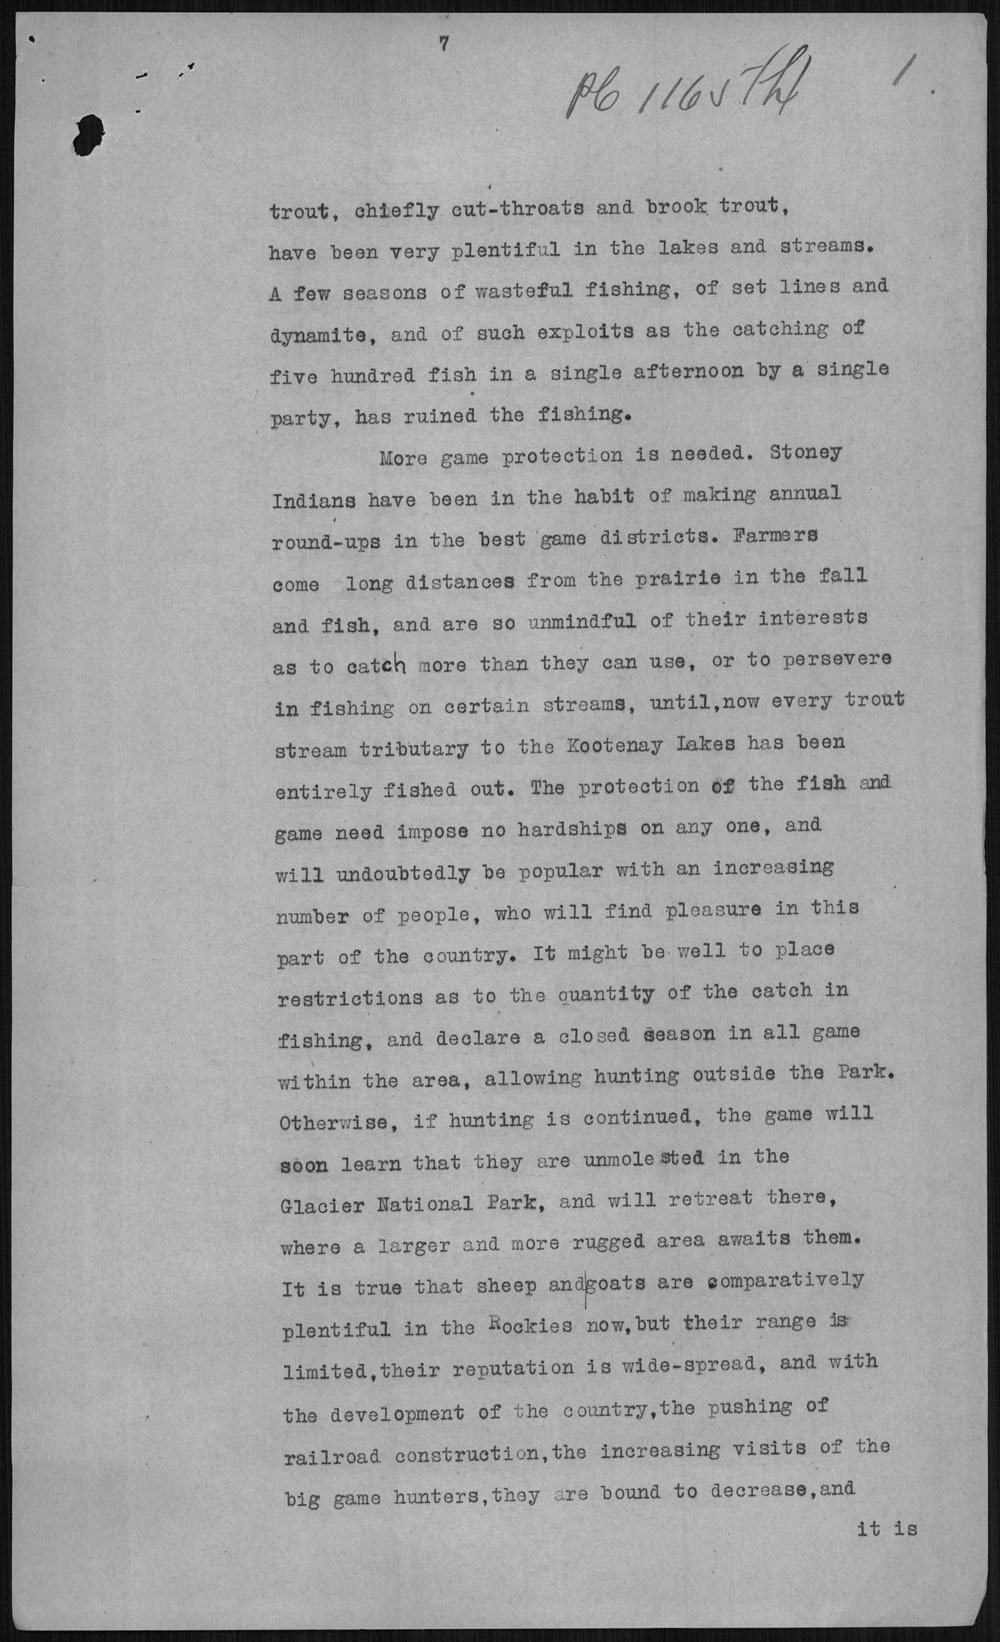 Digitized page of Orders in Council for Image No.: e010877264-v8